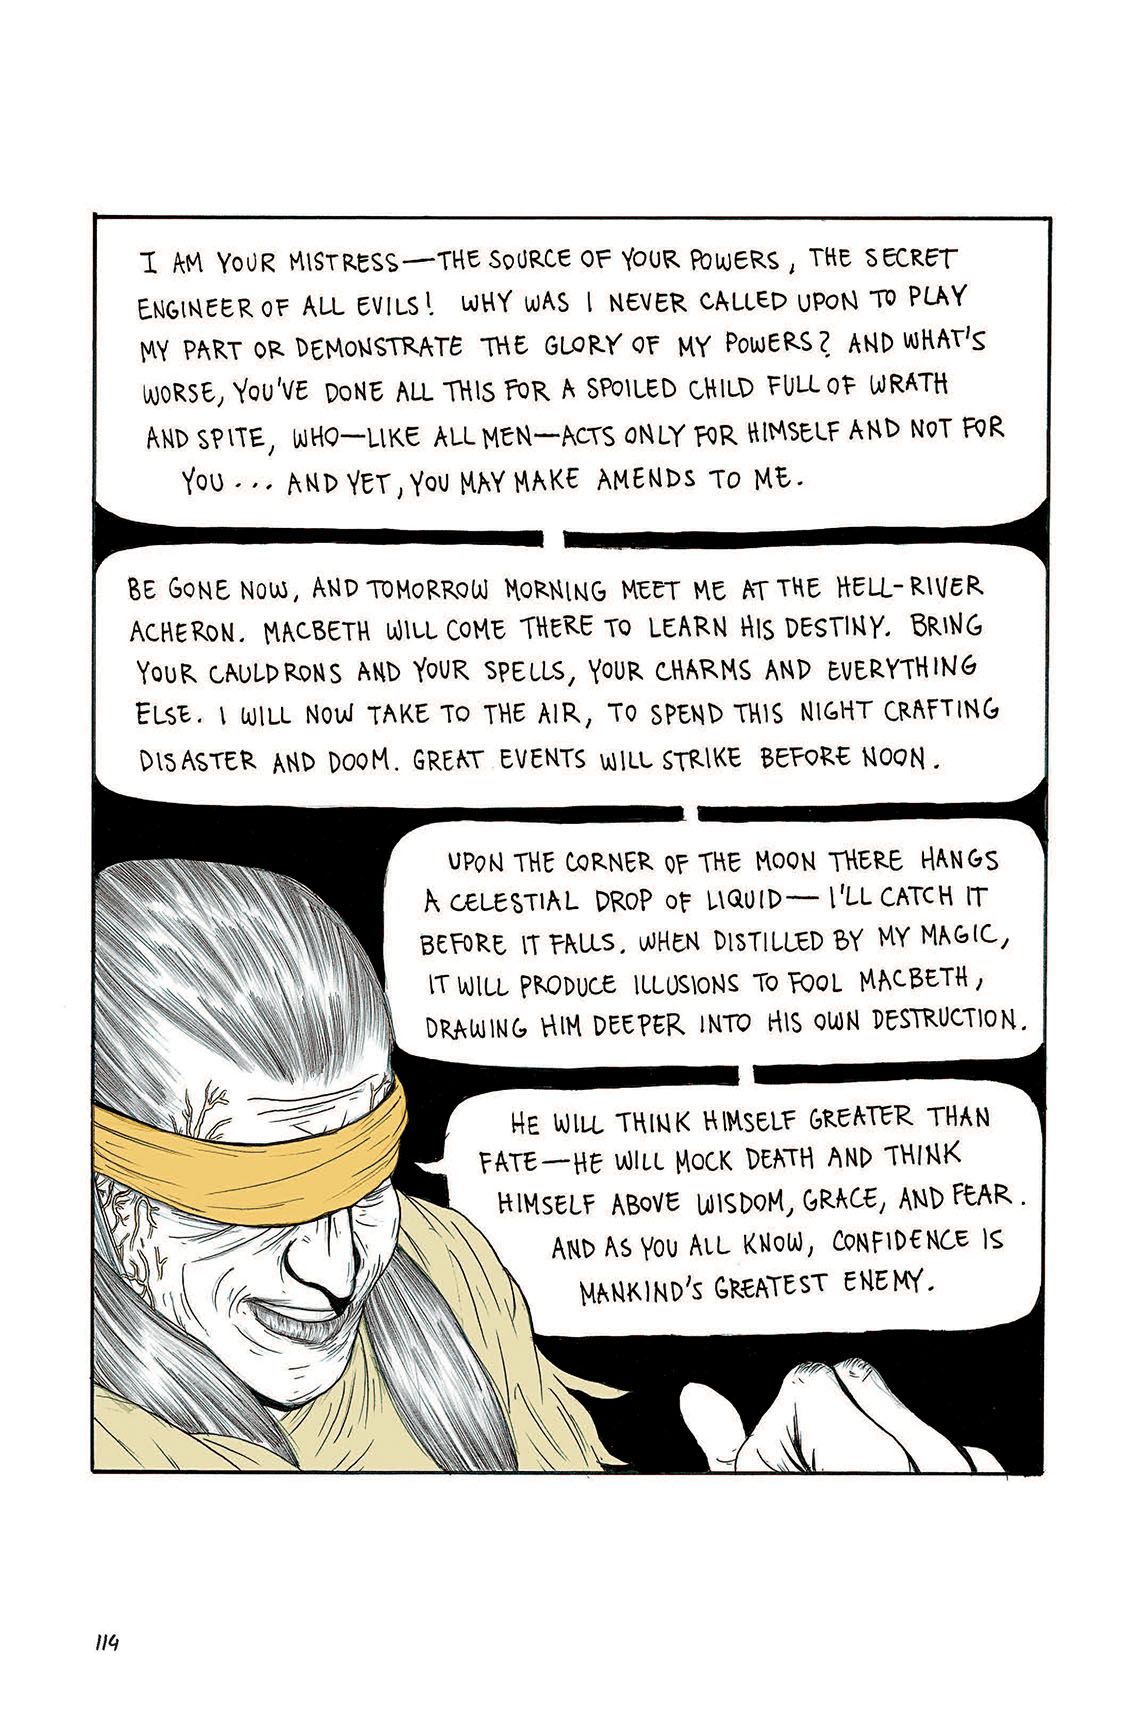 Macbeth Act 3 Scene 5 Page 114 Graphic Novel Sparknotes Juliu Caesar 2 Summary Sparknote